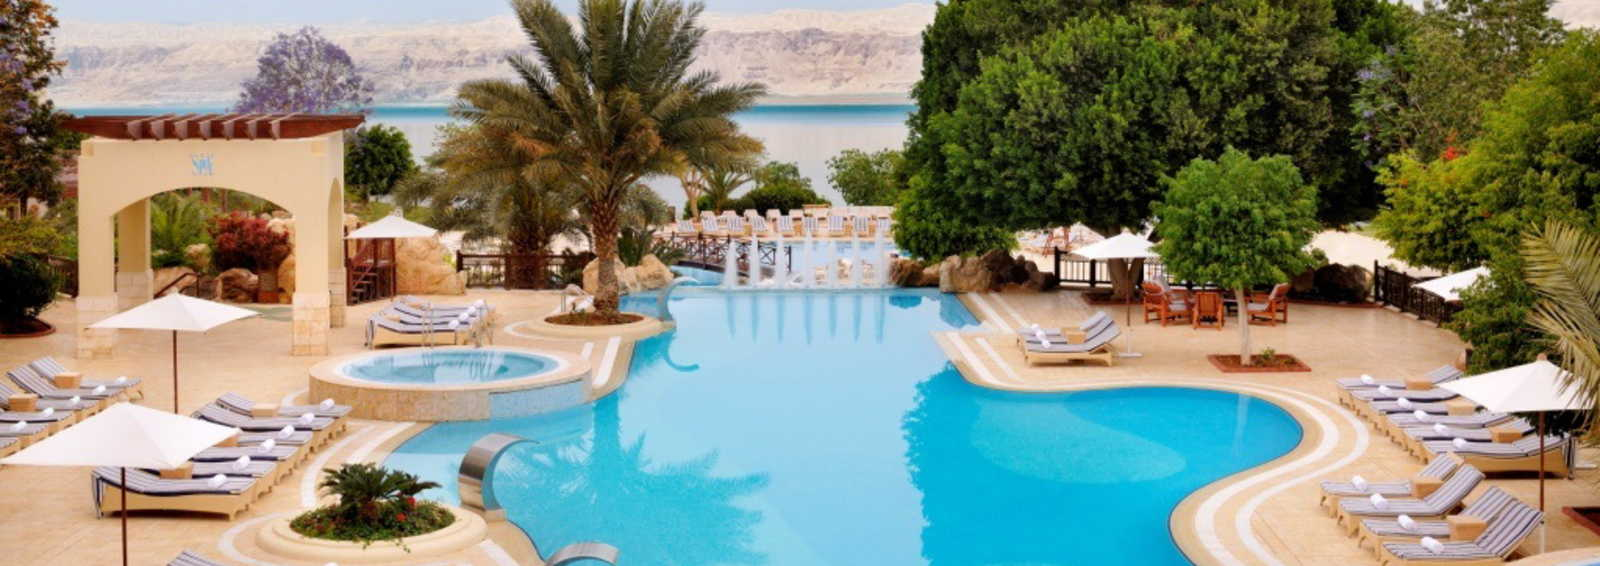 The 5 star Marriott Dead Sea Resort, Jordan